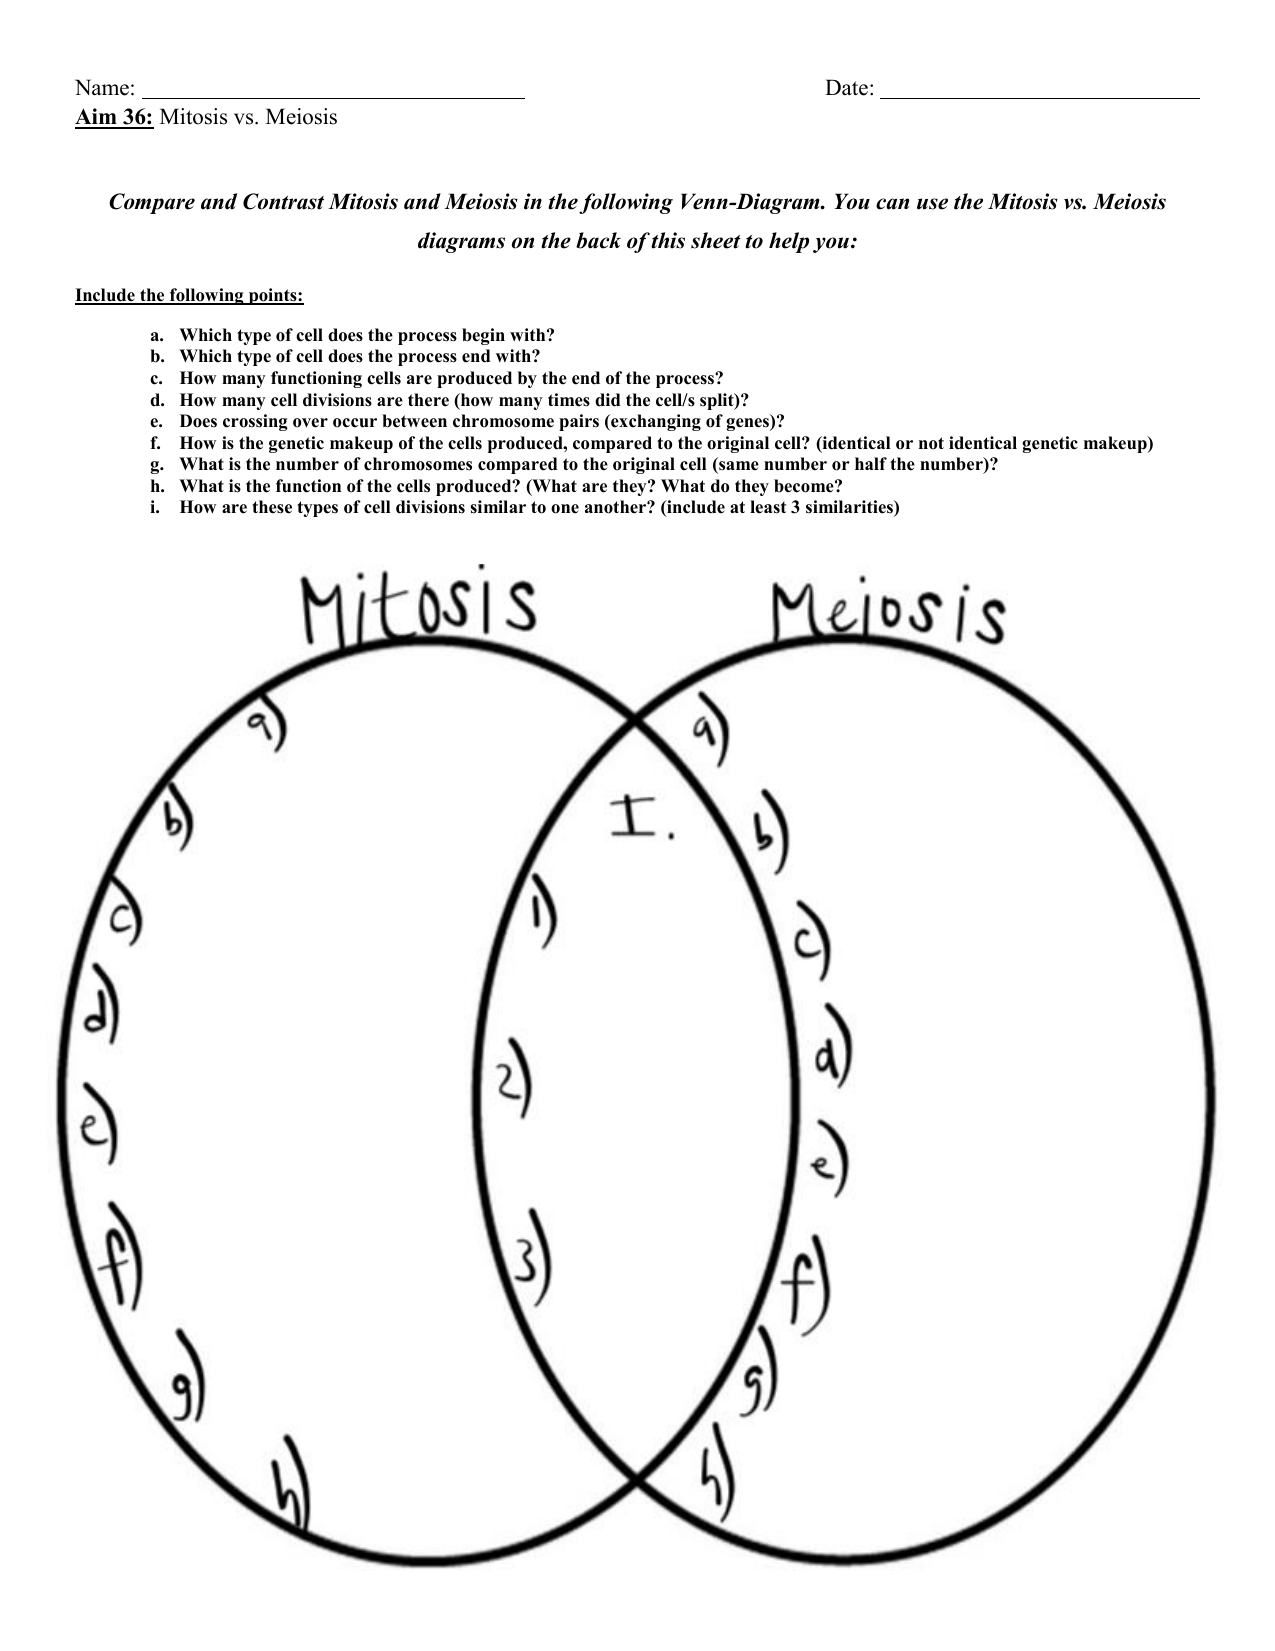 Name Date Aim 36 Mitosis Vs Meiosis Compare And Contrast